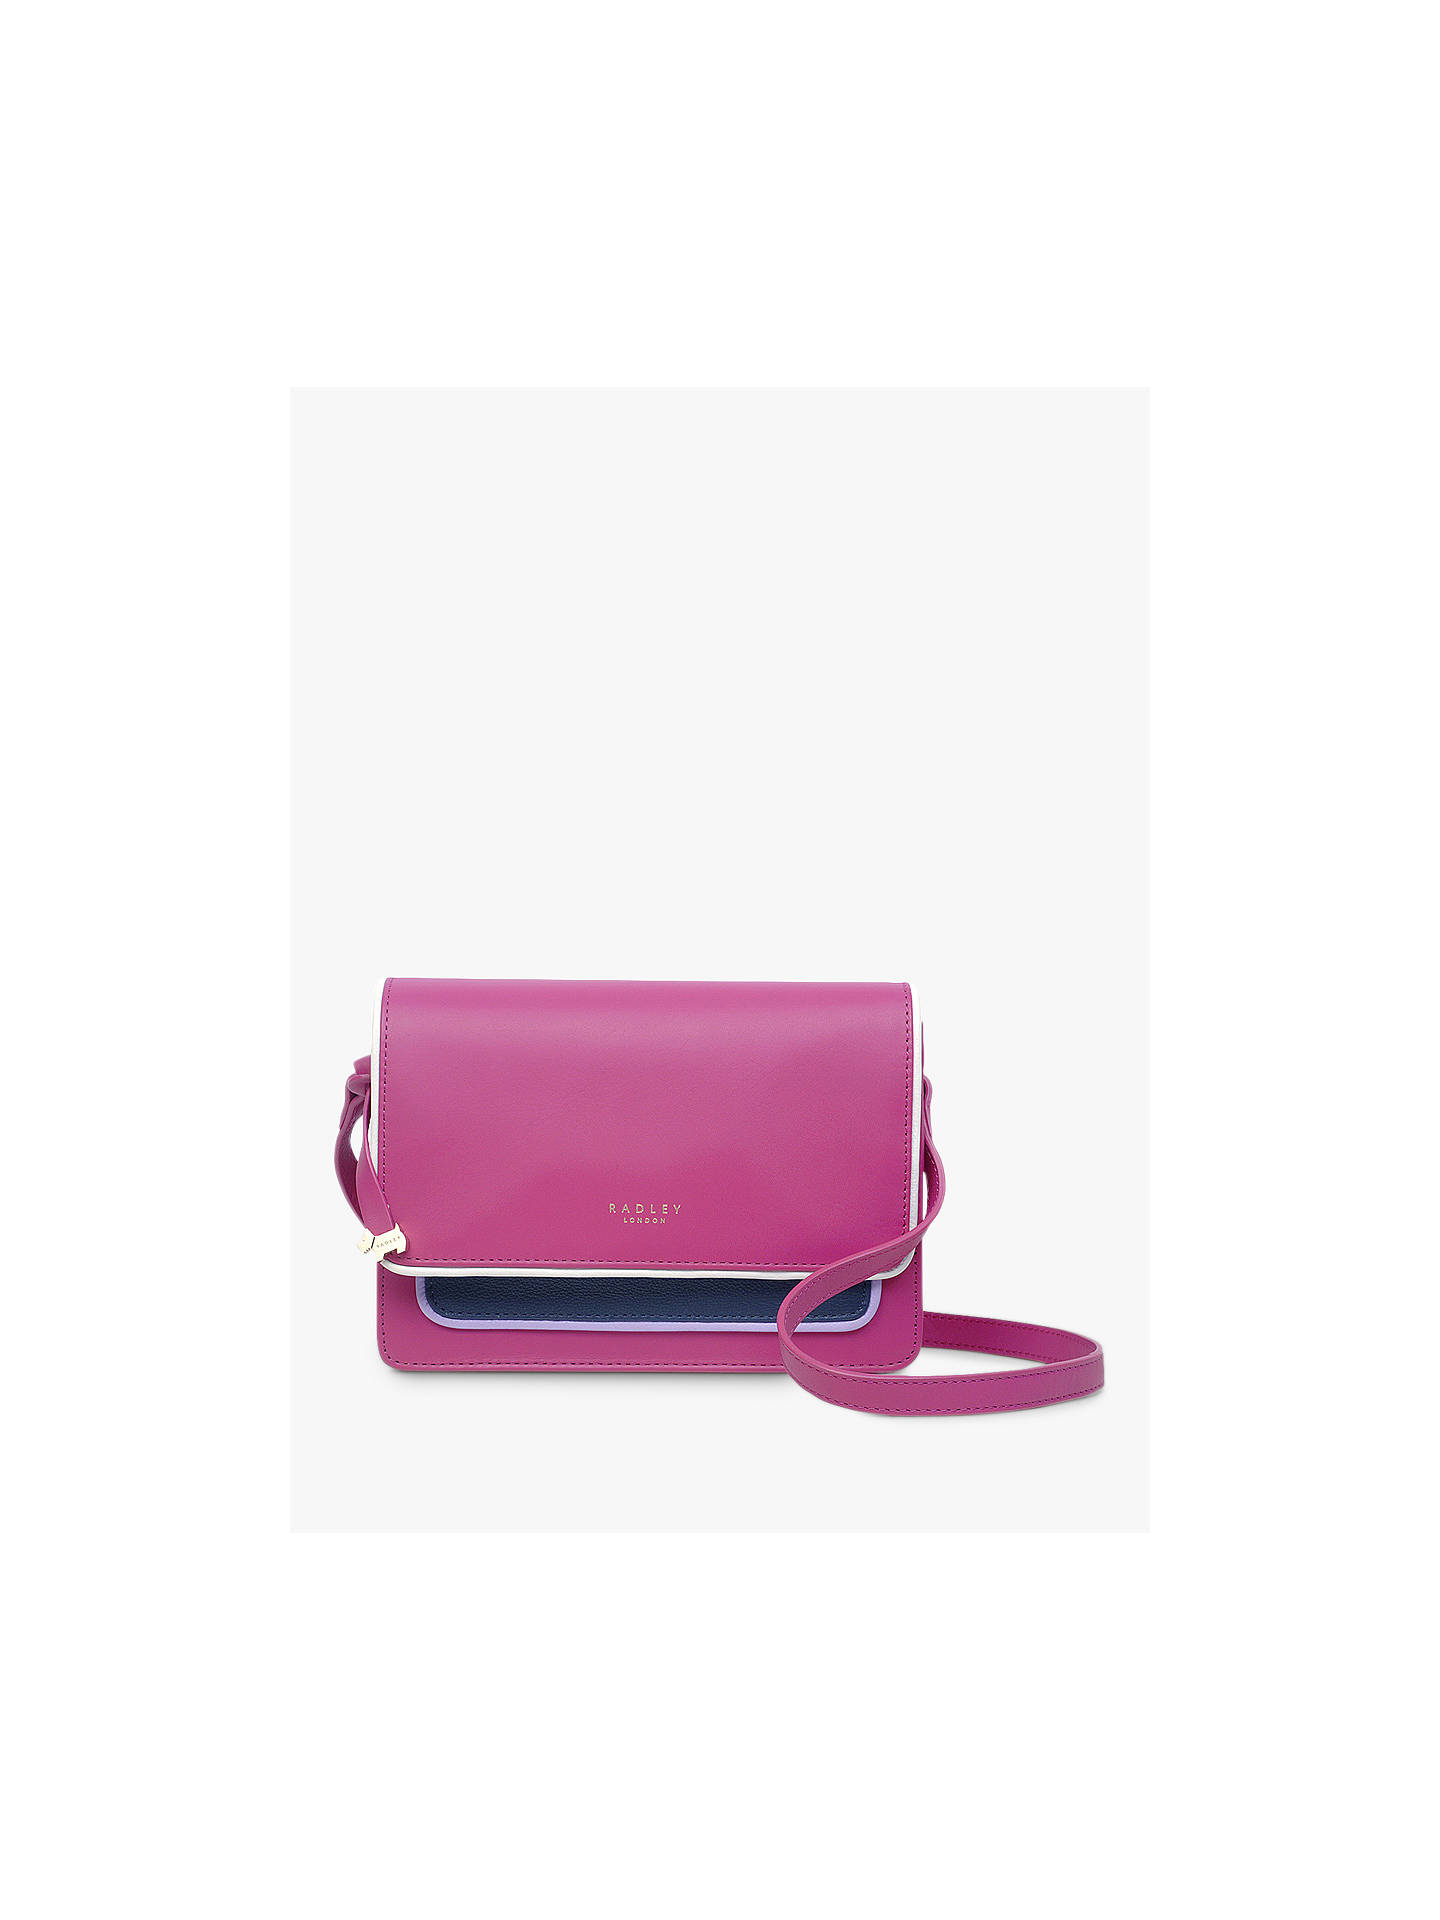 4dc7f75462 Buy Radley Selby Street Leather Medium Cross Body Bag, Fuchsia Pink Online  at johnlewis.